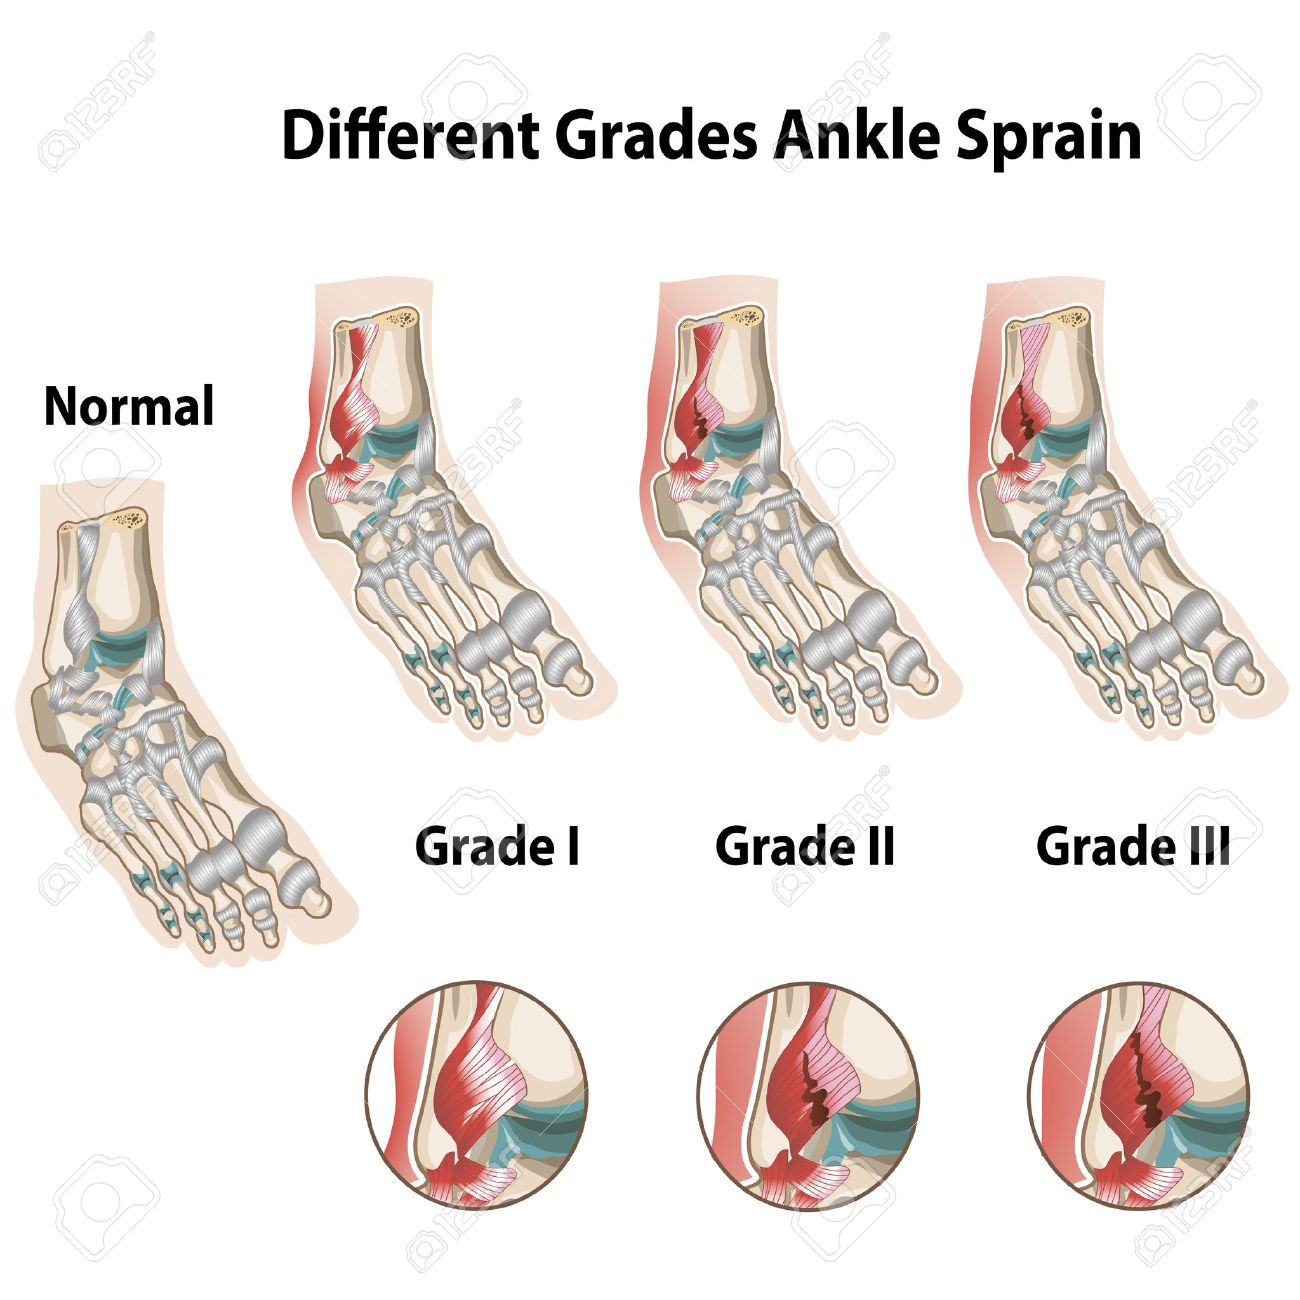 Different grades of ankle sprains - 39495350